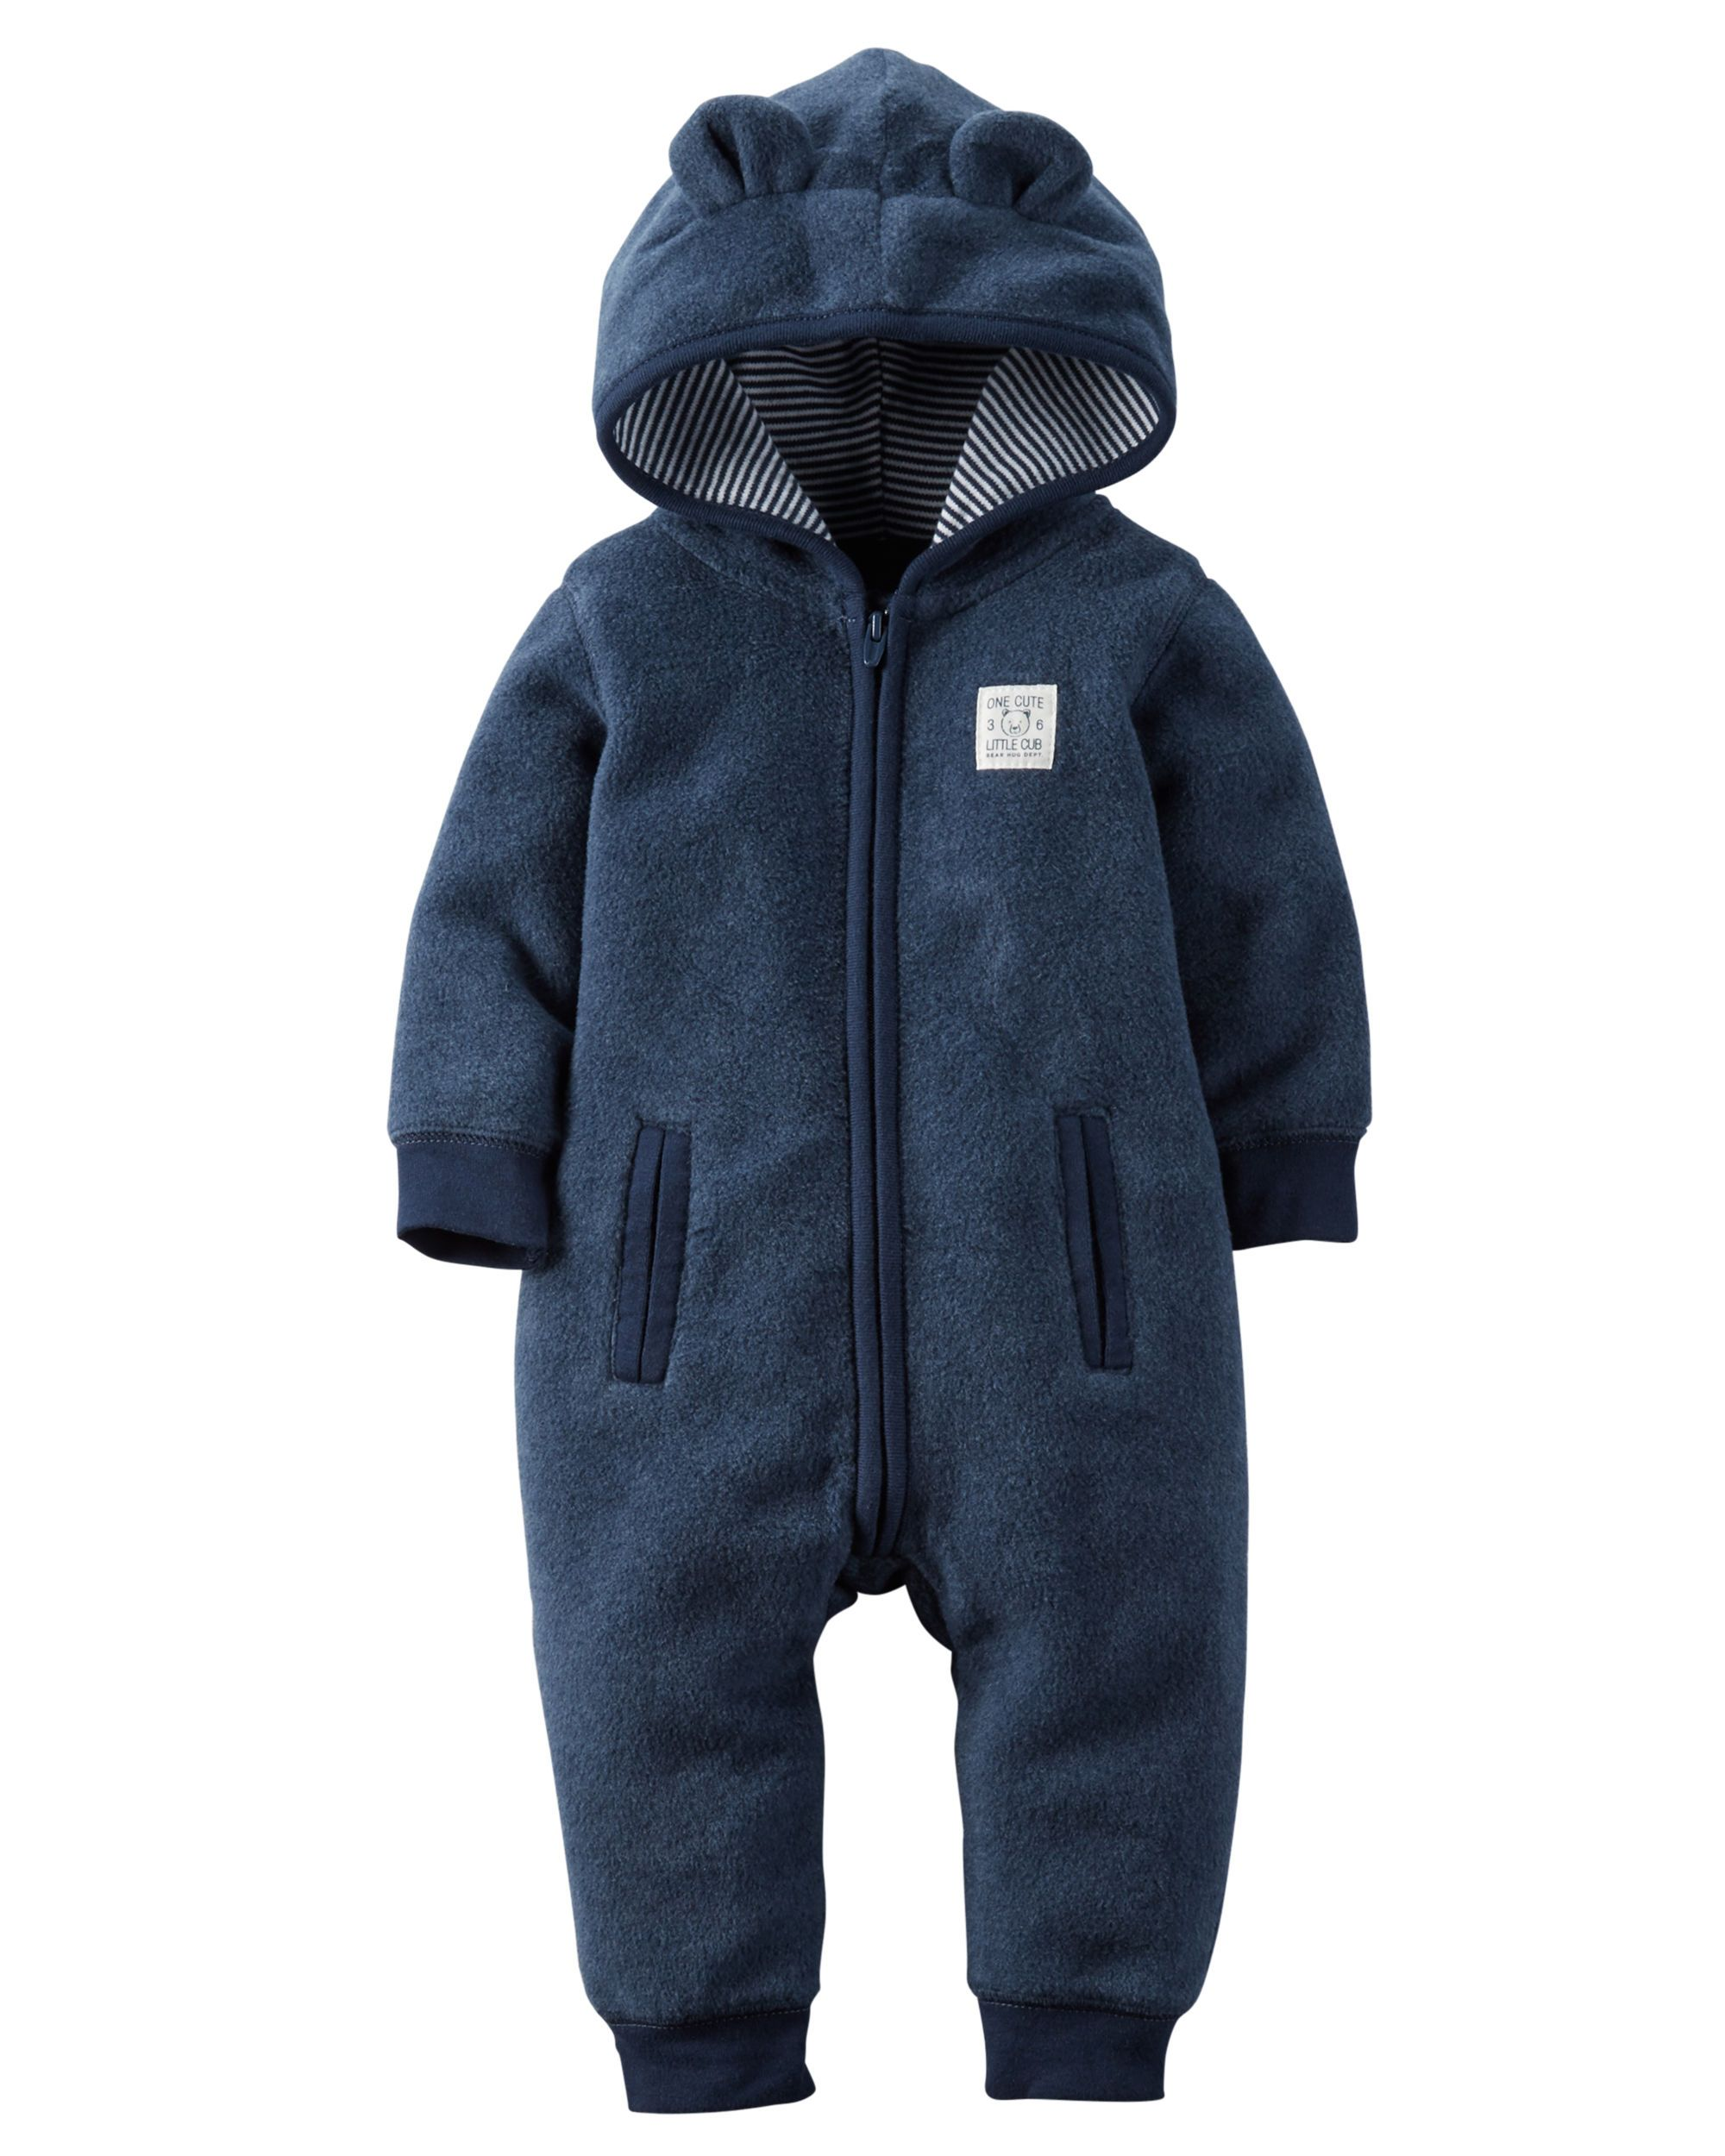 05b0dbf9c7dd Baby Boy Hooded Fleece Jumpsuit from Carters.com. Shop clothing ...